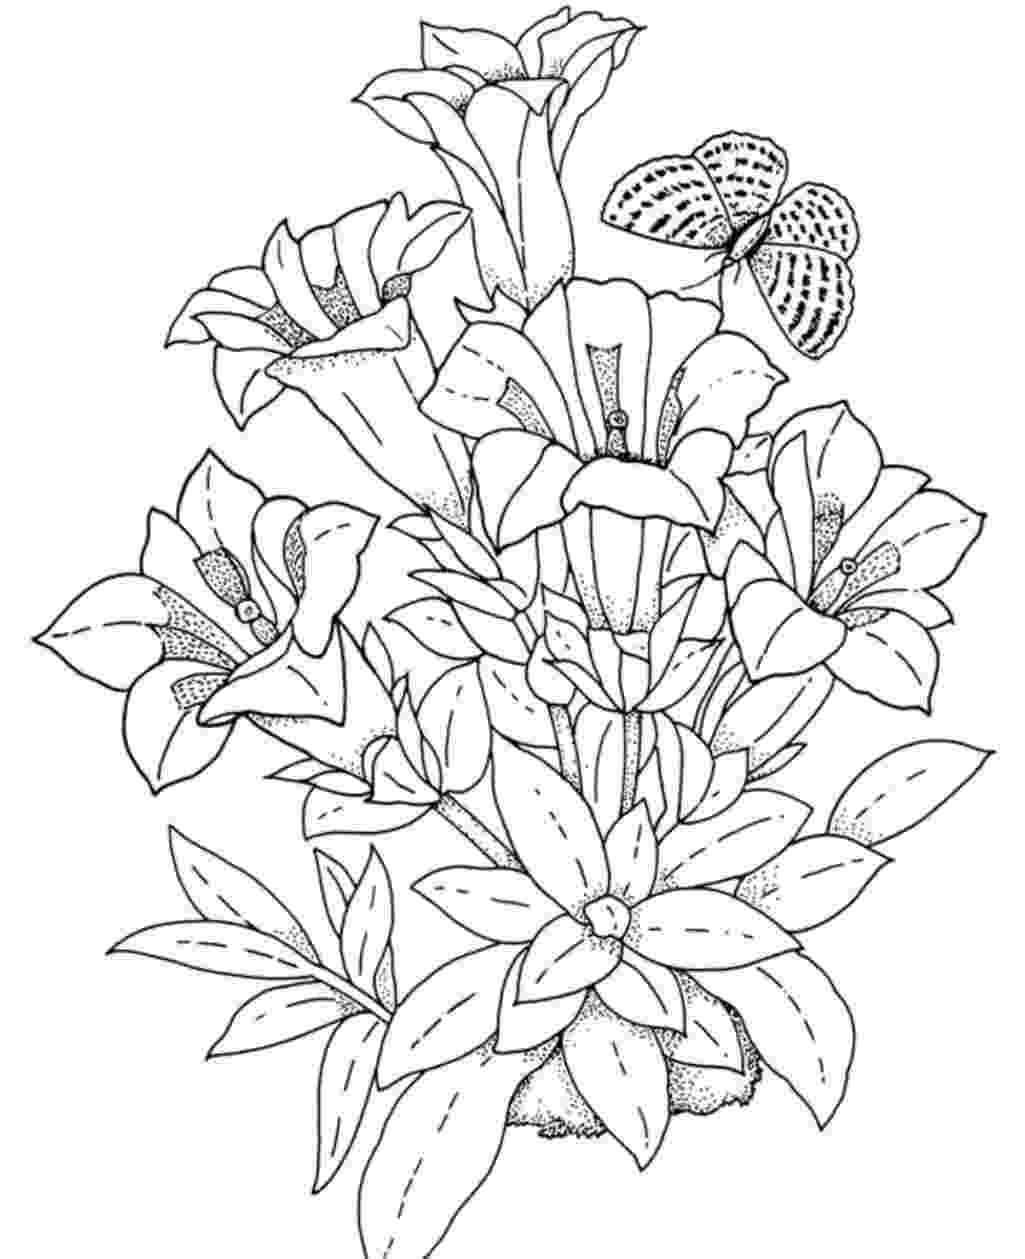 flower pictures to print and color free printable flower coloring pages for kids best print to color and pictures flower